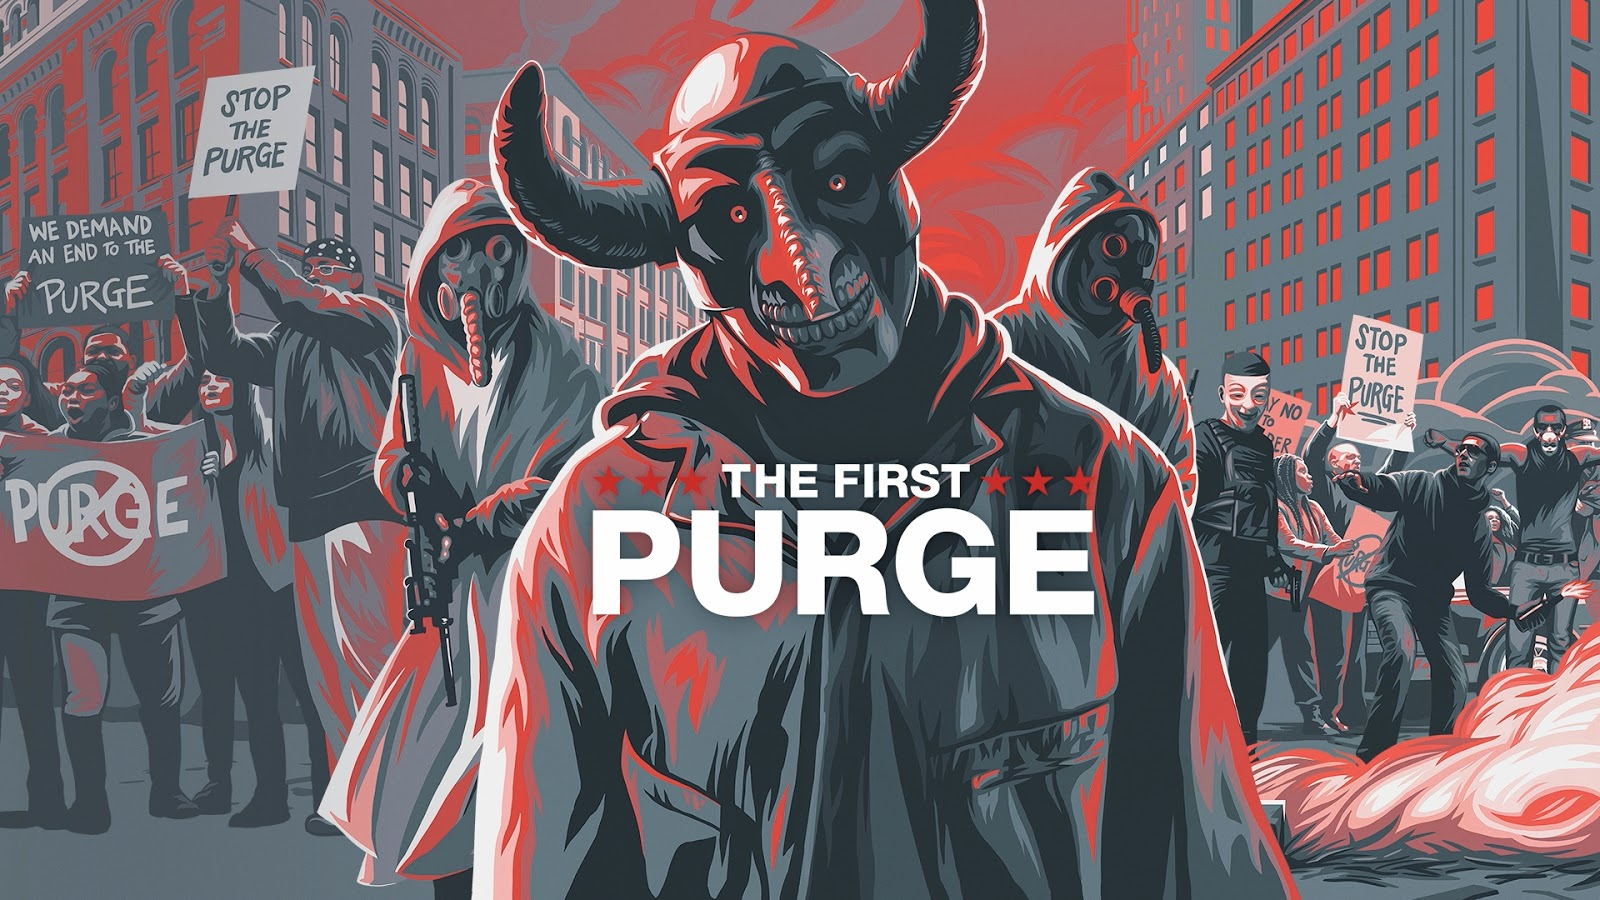 And Creators Speaking About Expanding The World Of The Purge Series With This One And A 2 Min Bit About The Use Of Masks In The Film Which Was Cool